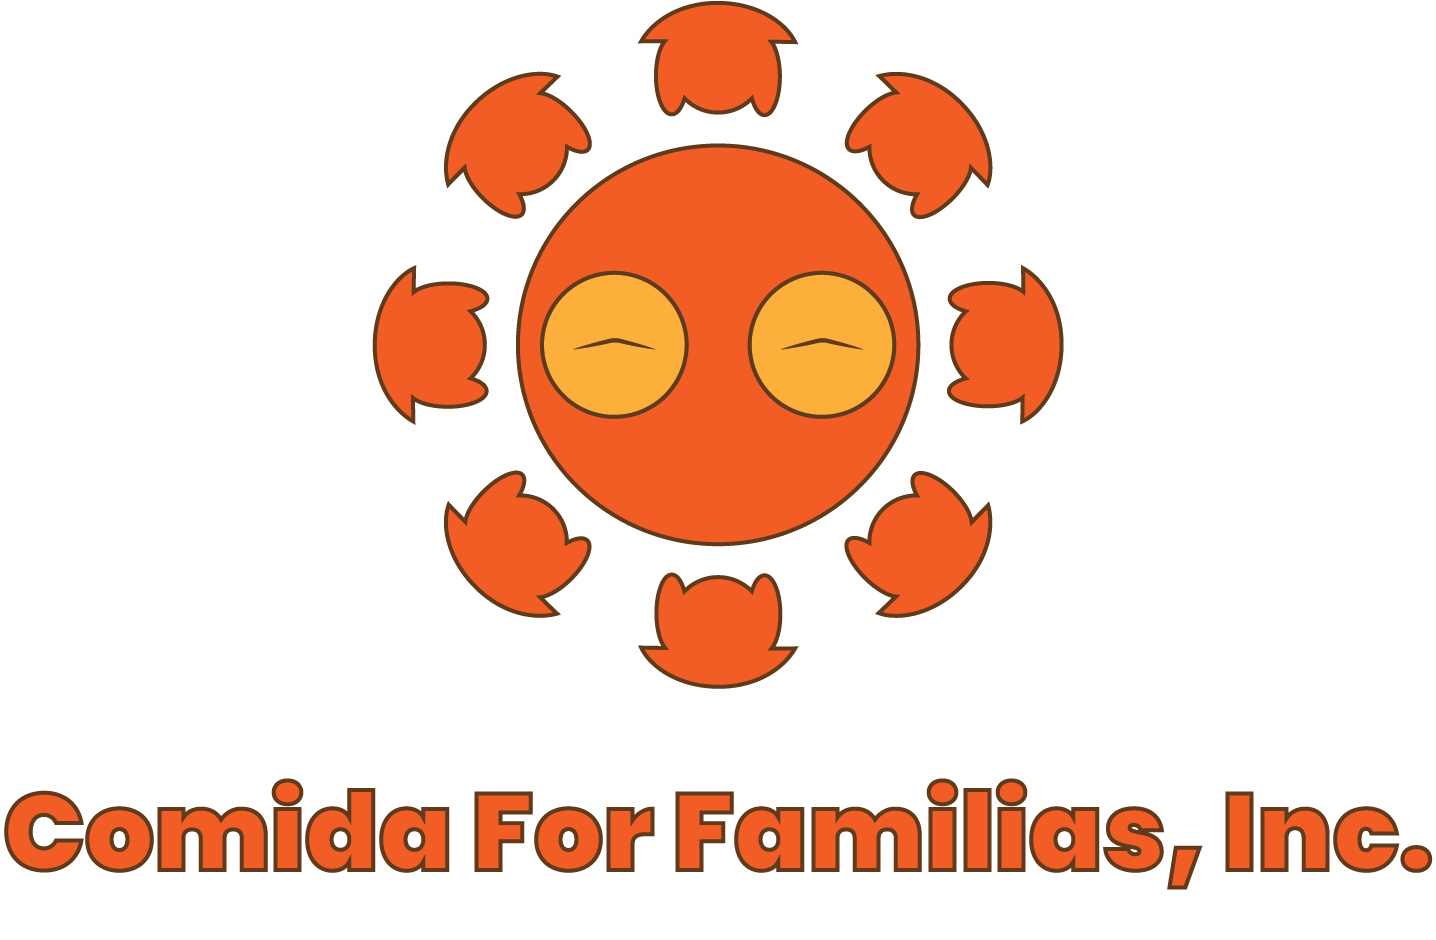 Comida For Familias, Inc. Is Creating Apps and Web Services To Efficiently Distribute Food and Resources